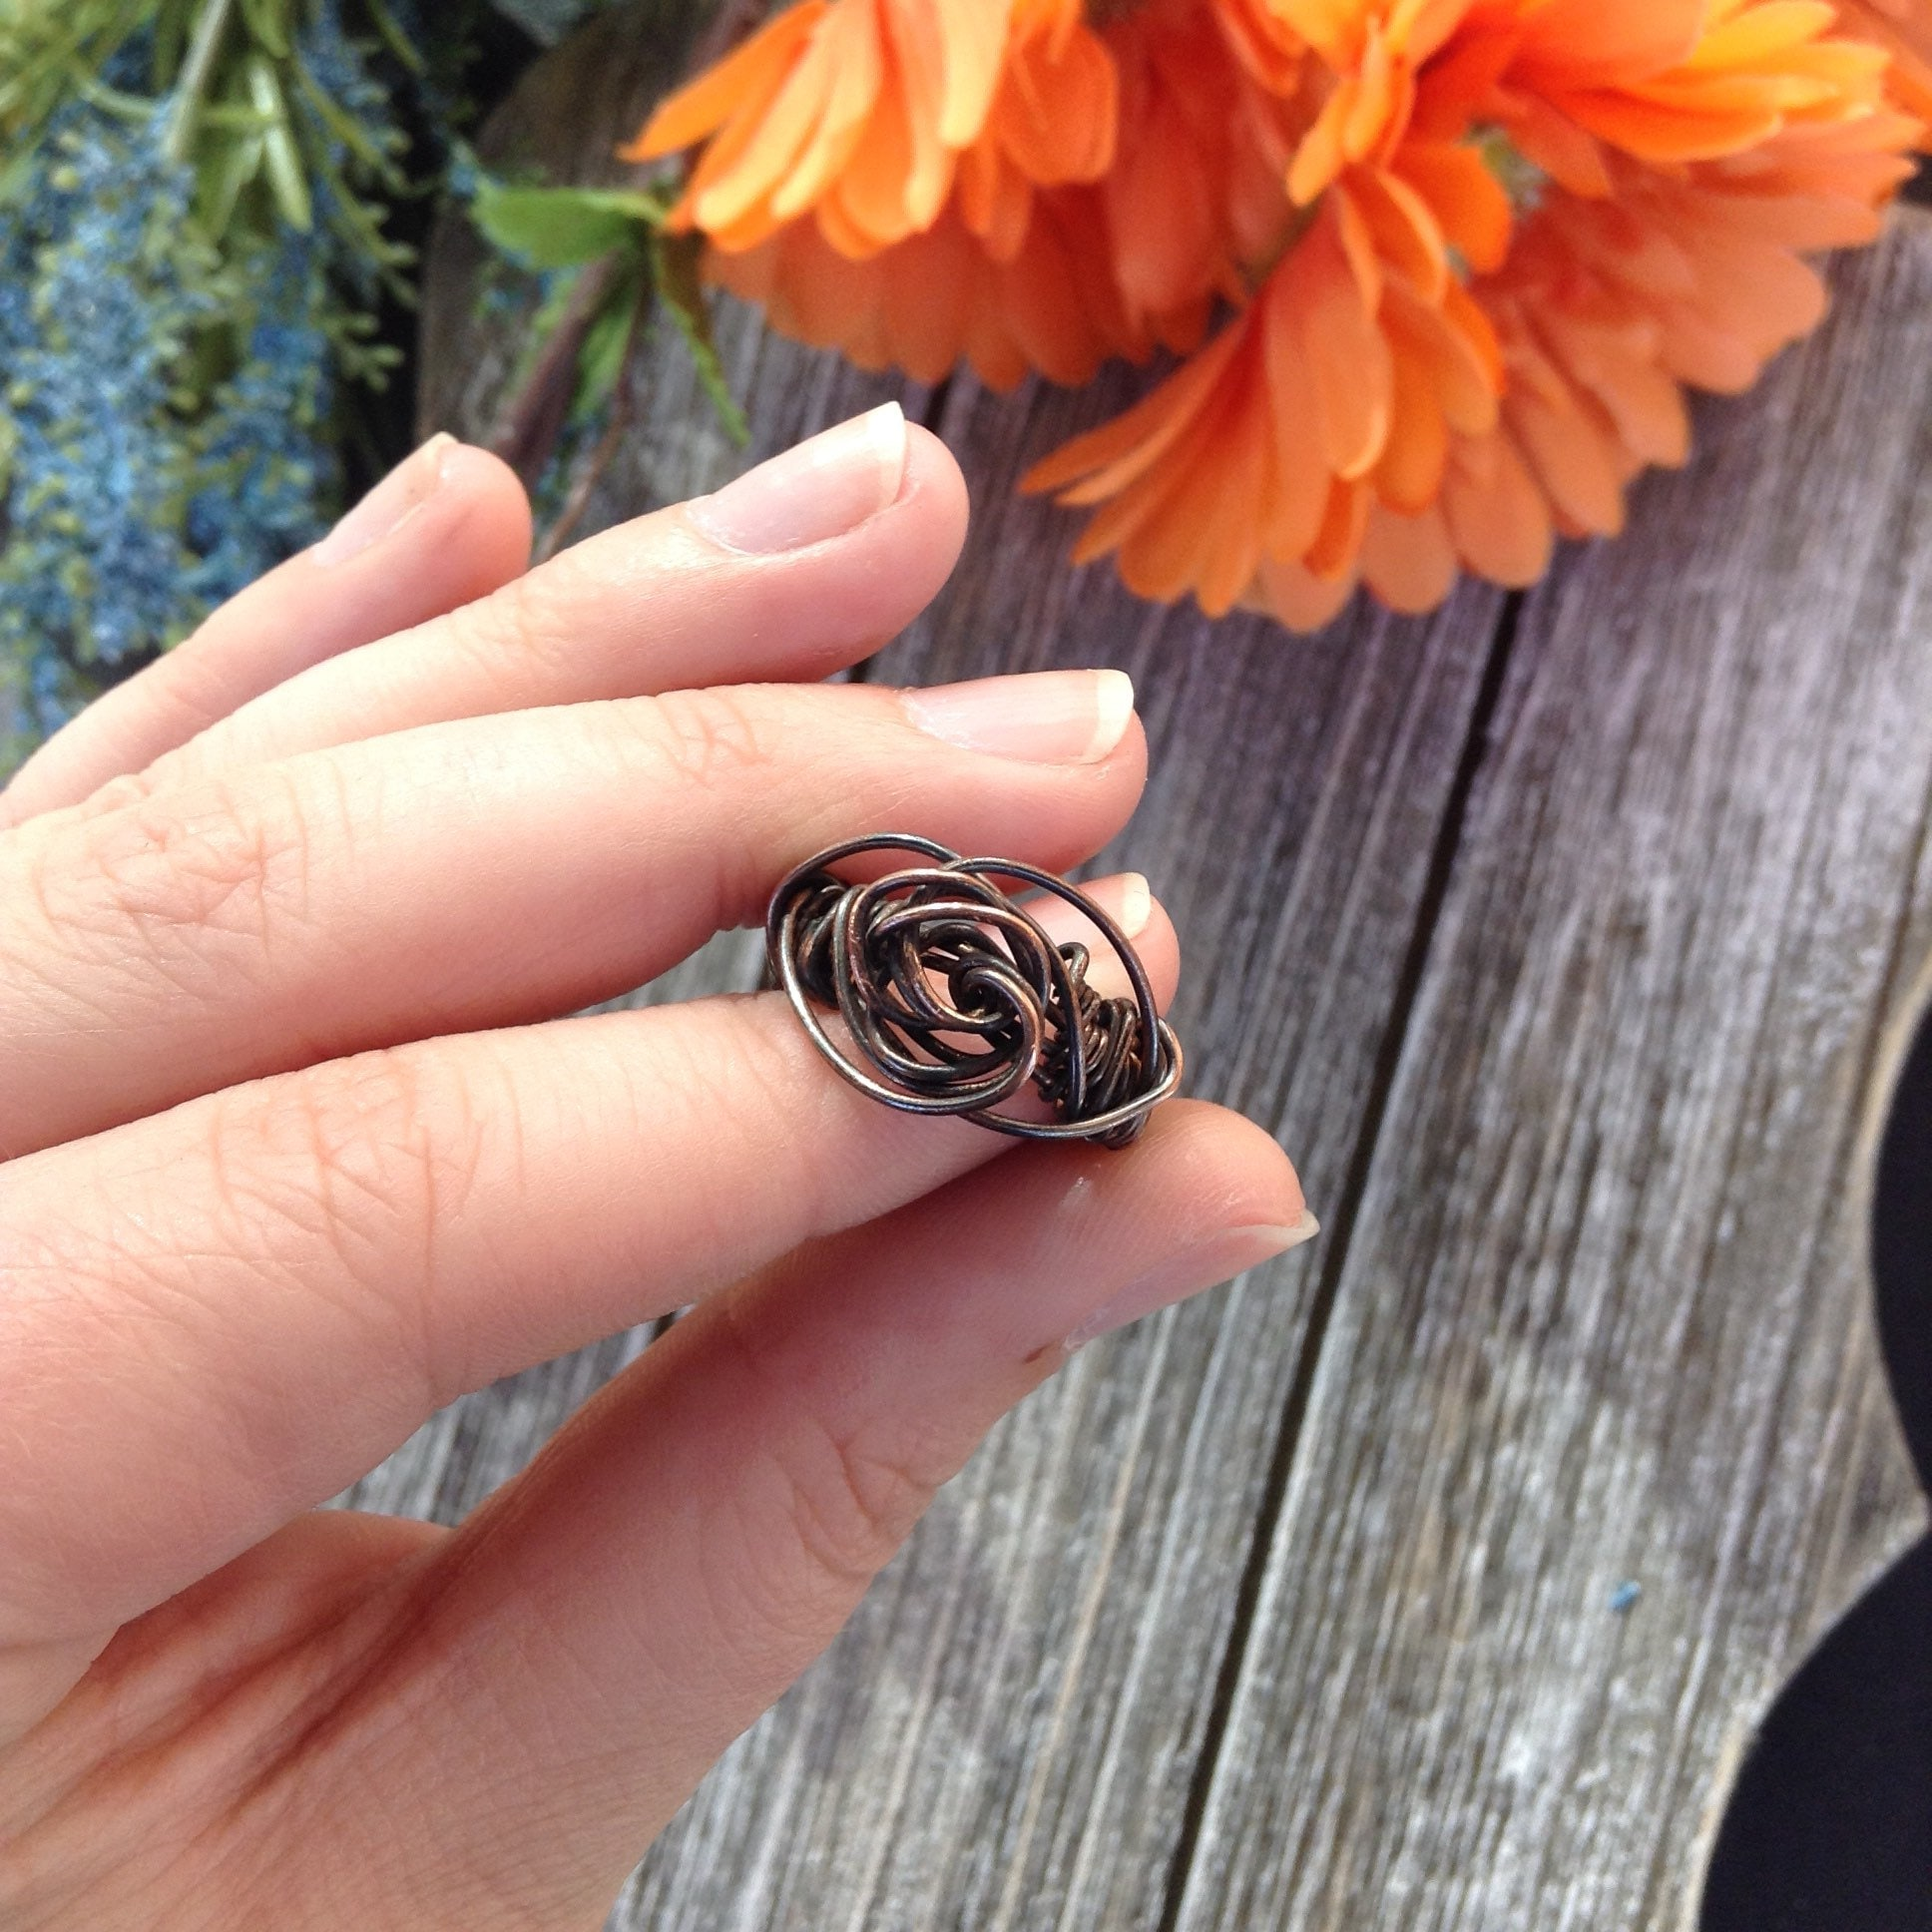 Handmade rose oxidized copper wire wrapped ring, boho jewelry